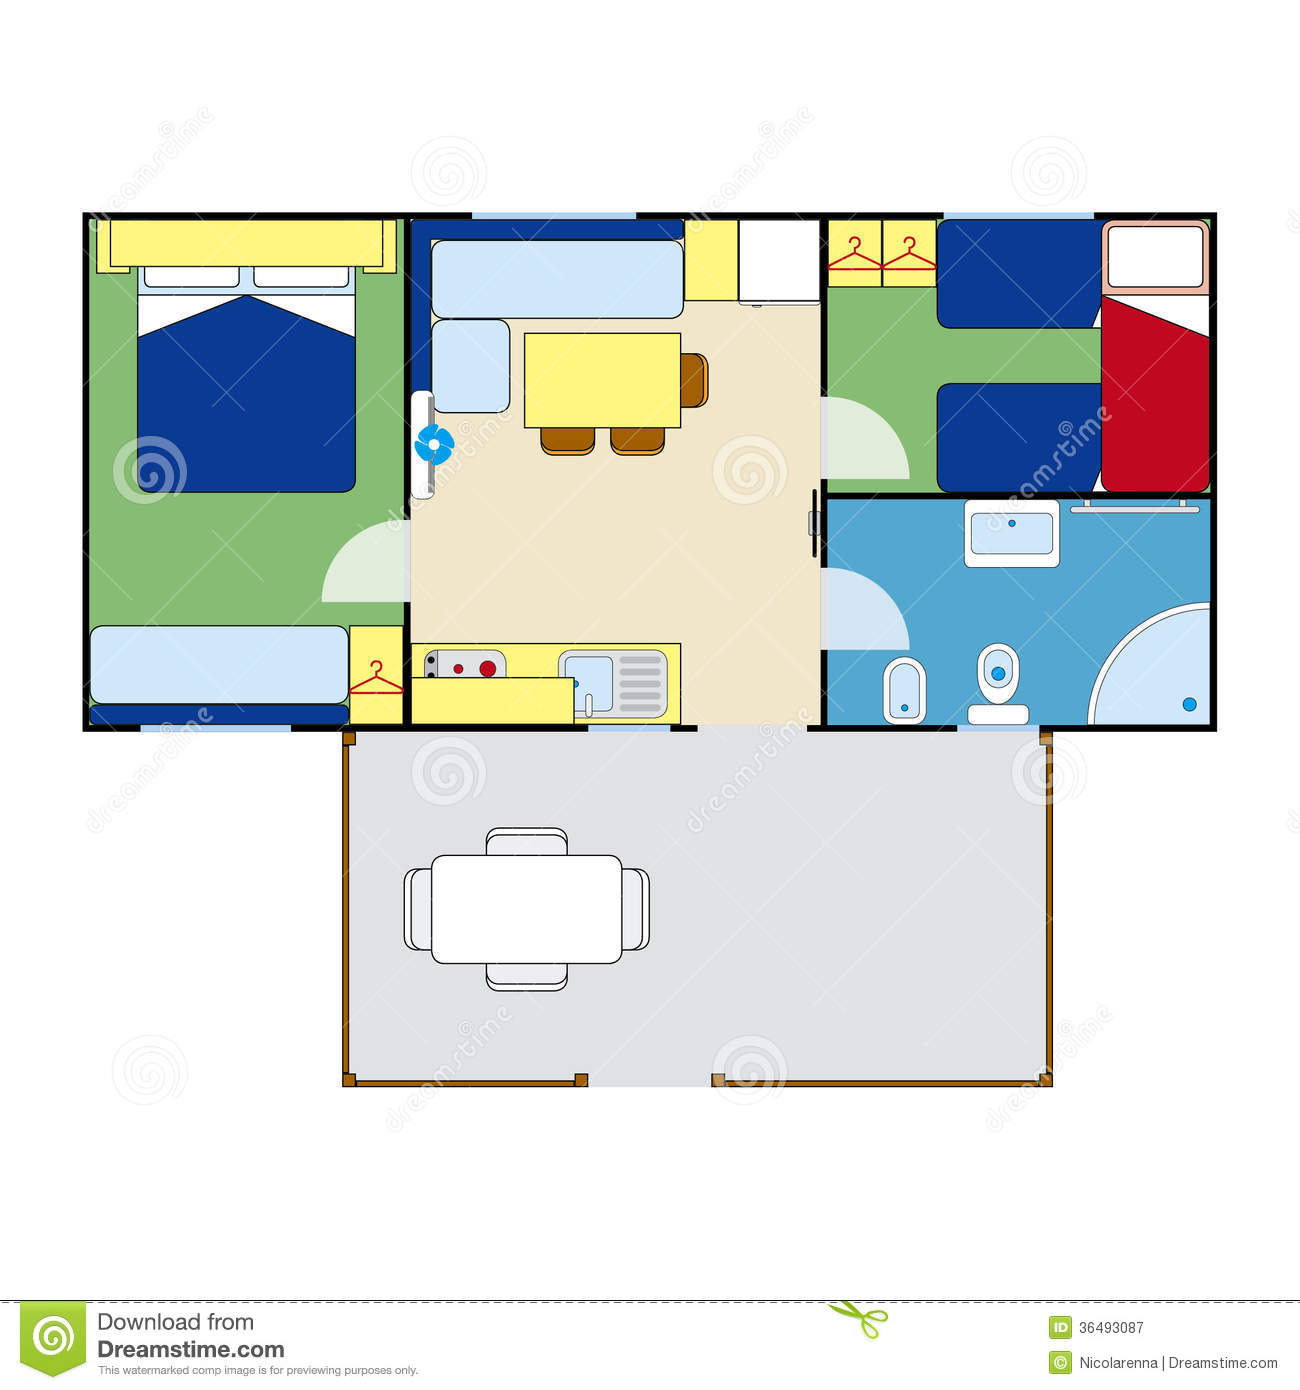 Apartment plan royalty free stock photography image for Apartment stock plans